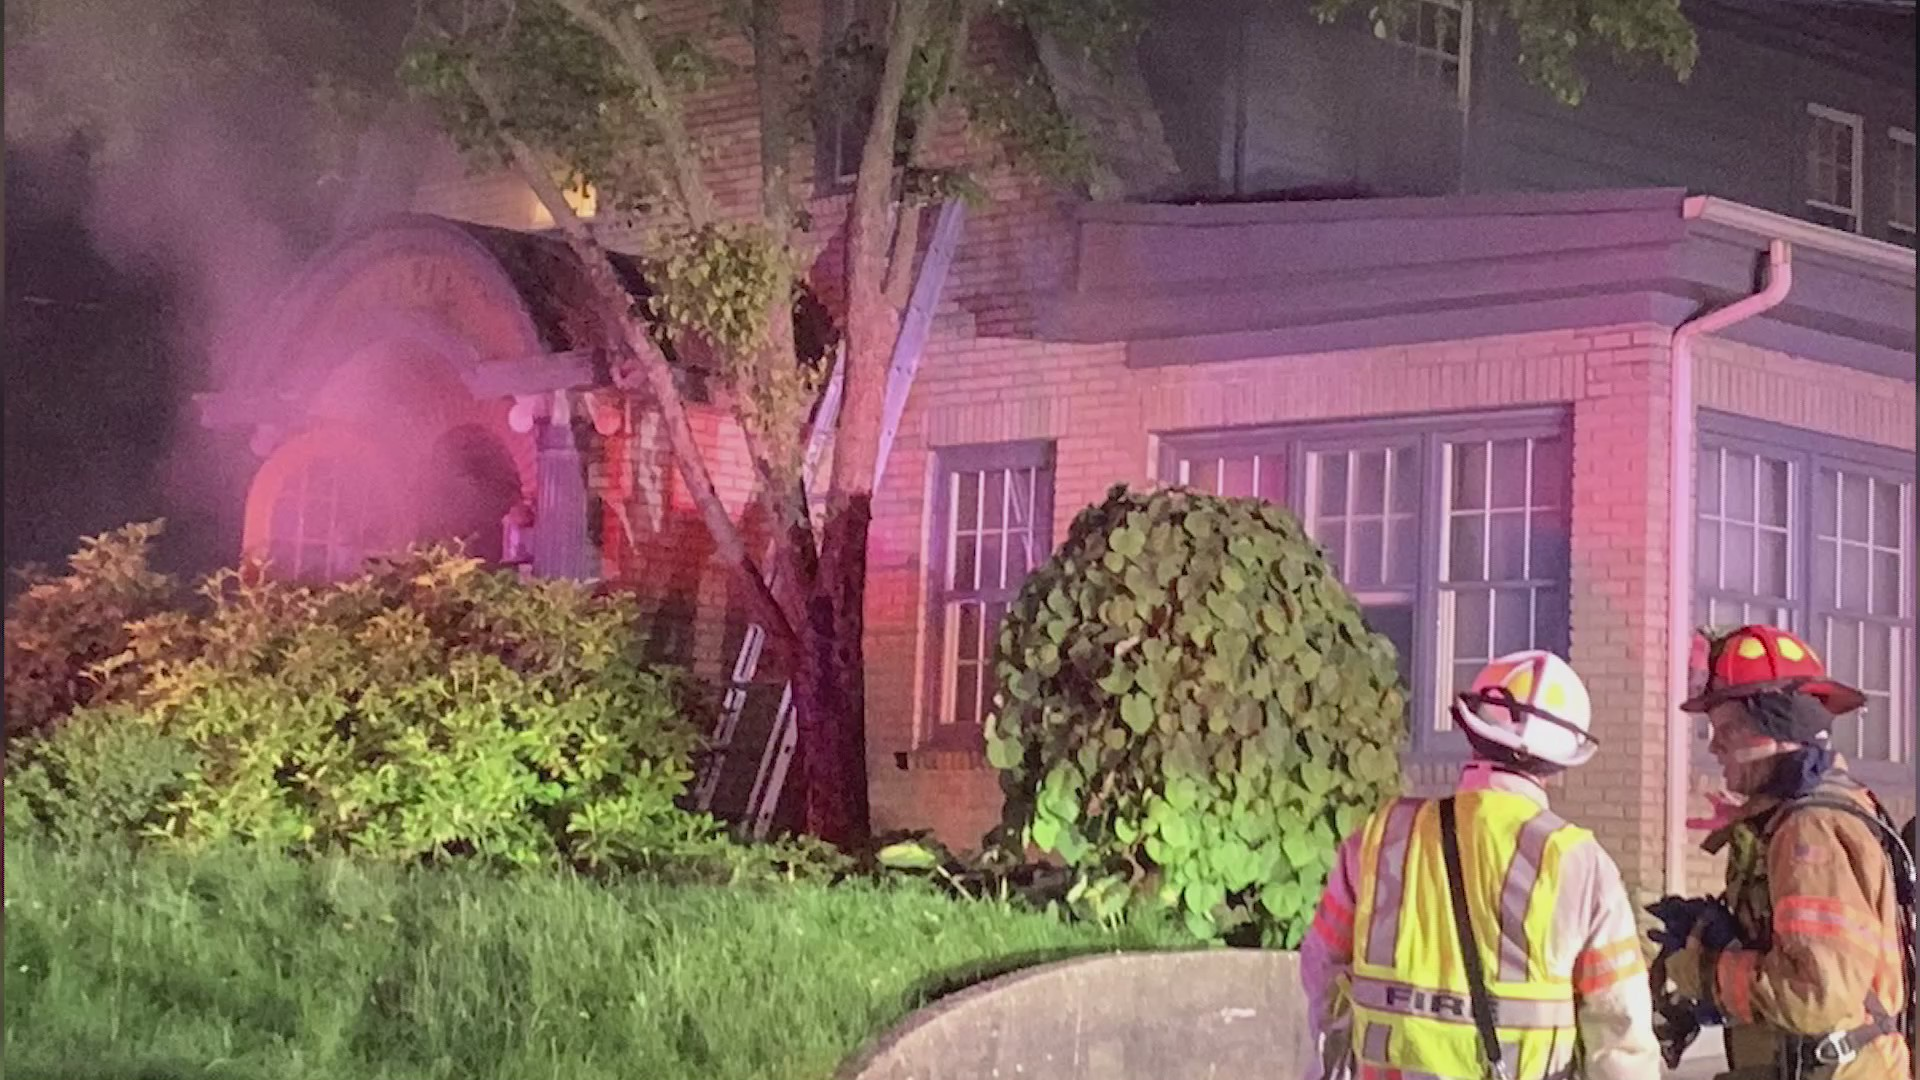 Firefighters rescue two people from roof of burning home